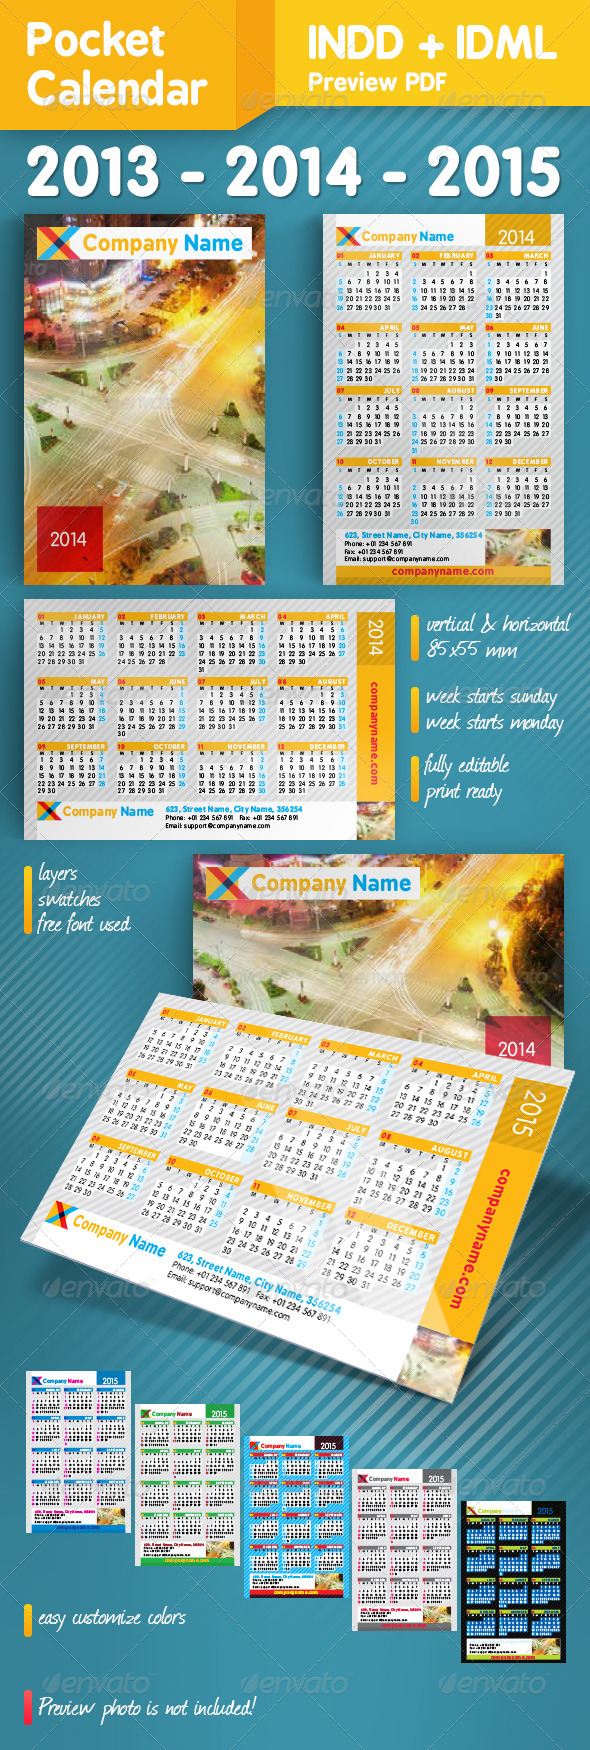 GraphicRiver Pocket Calendar Set 2013-2014-2015 5274478